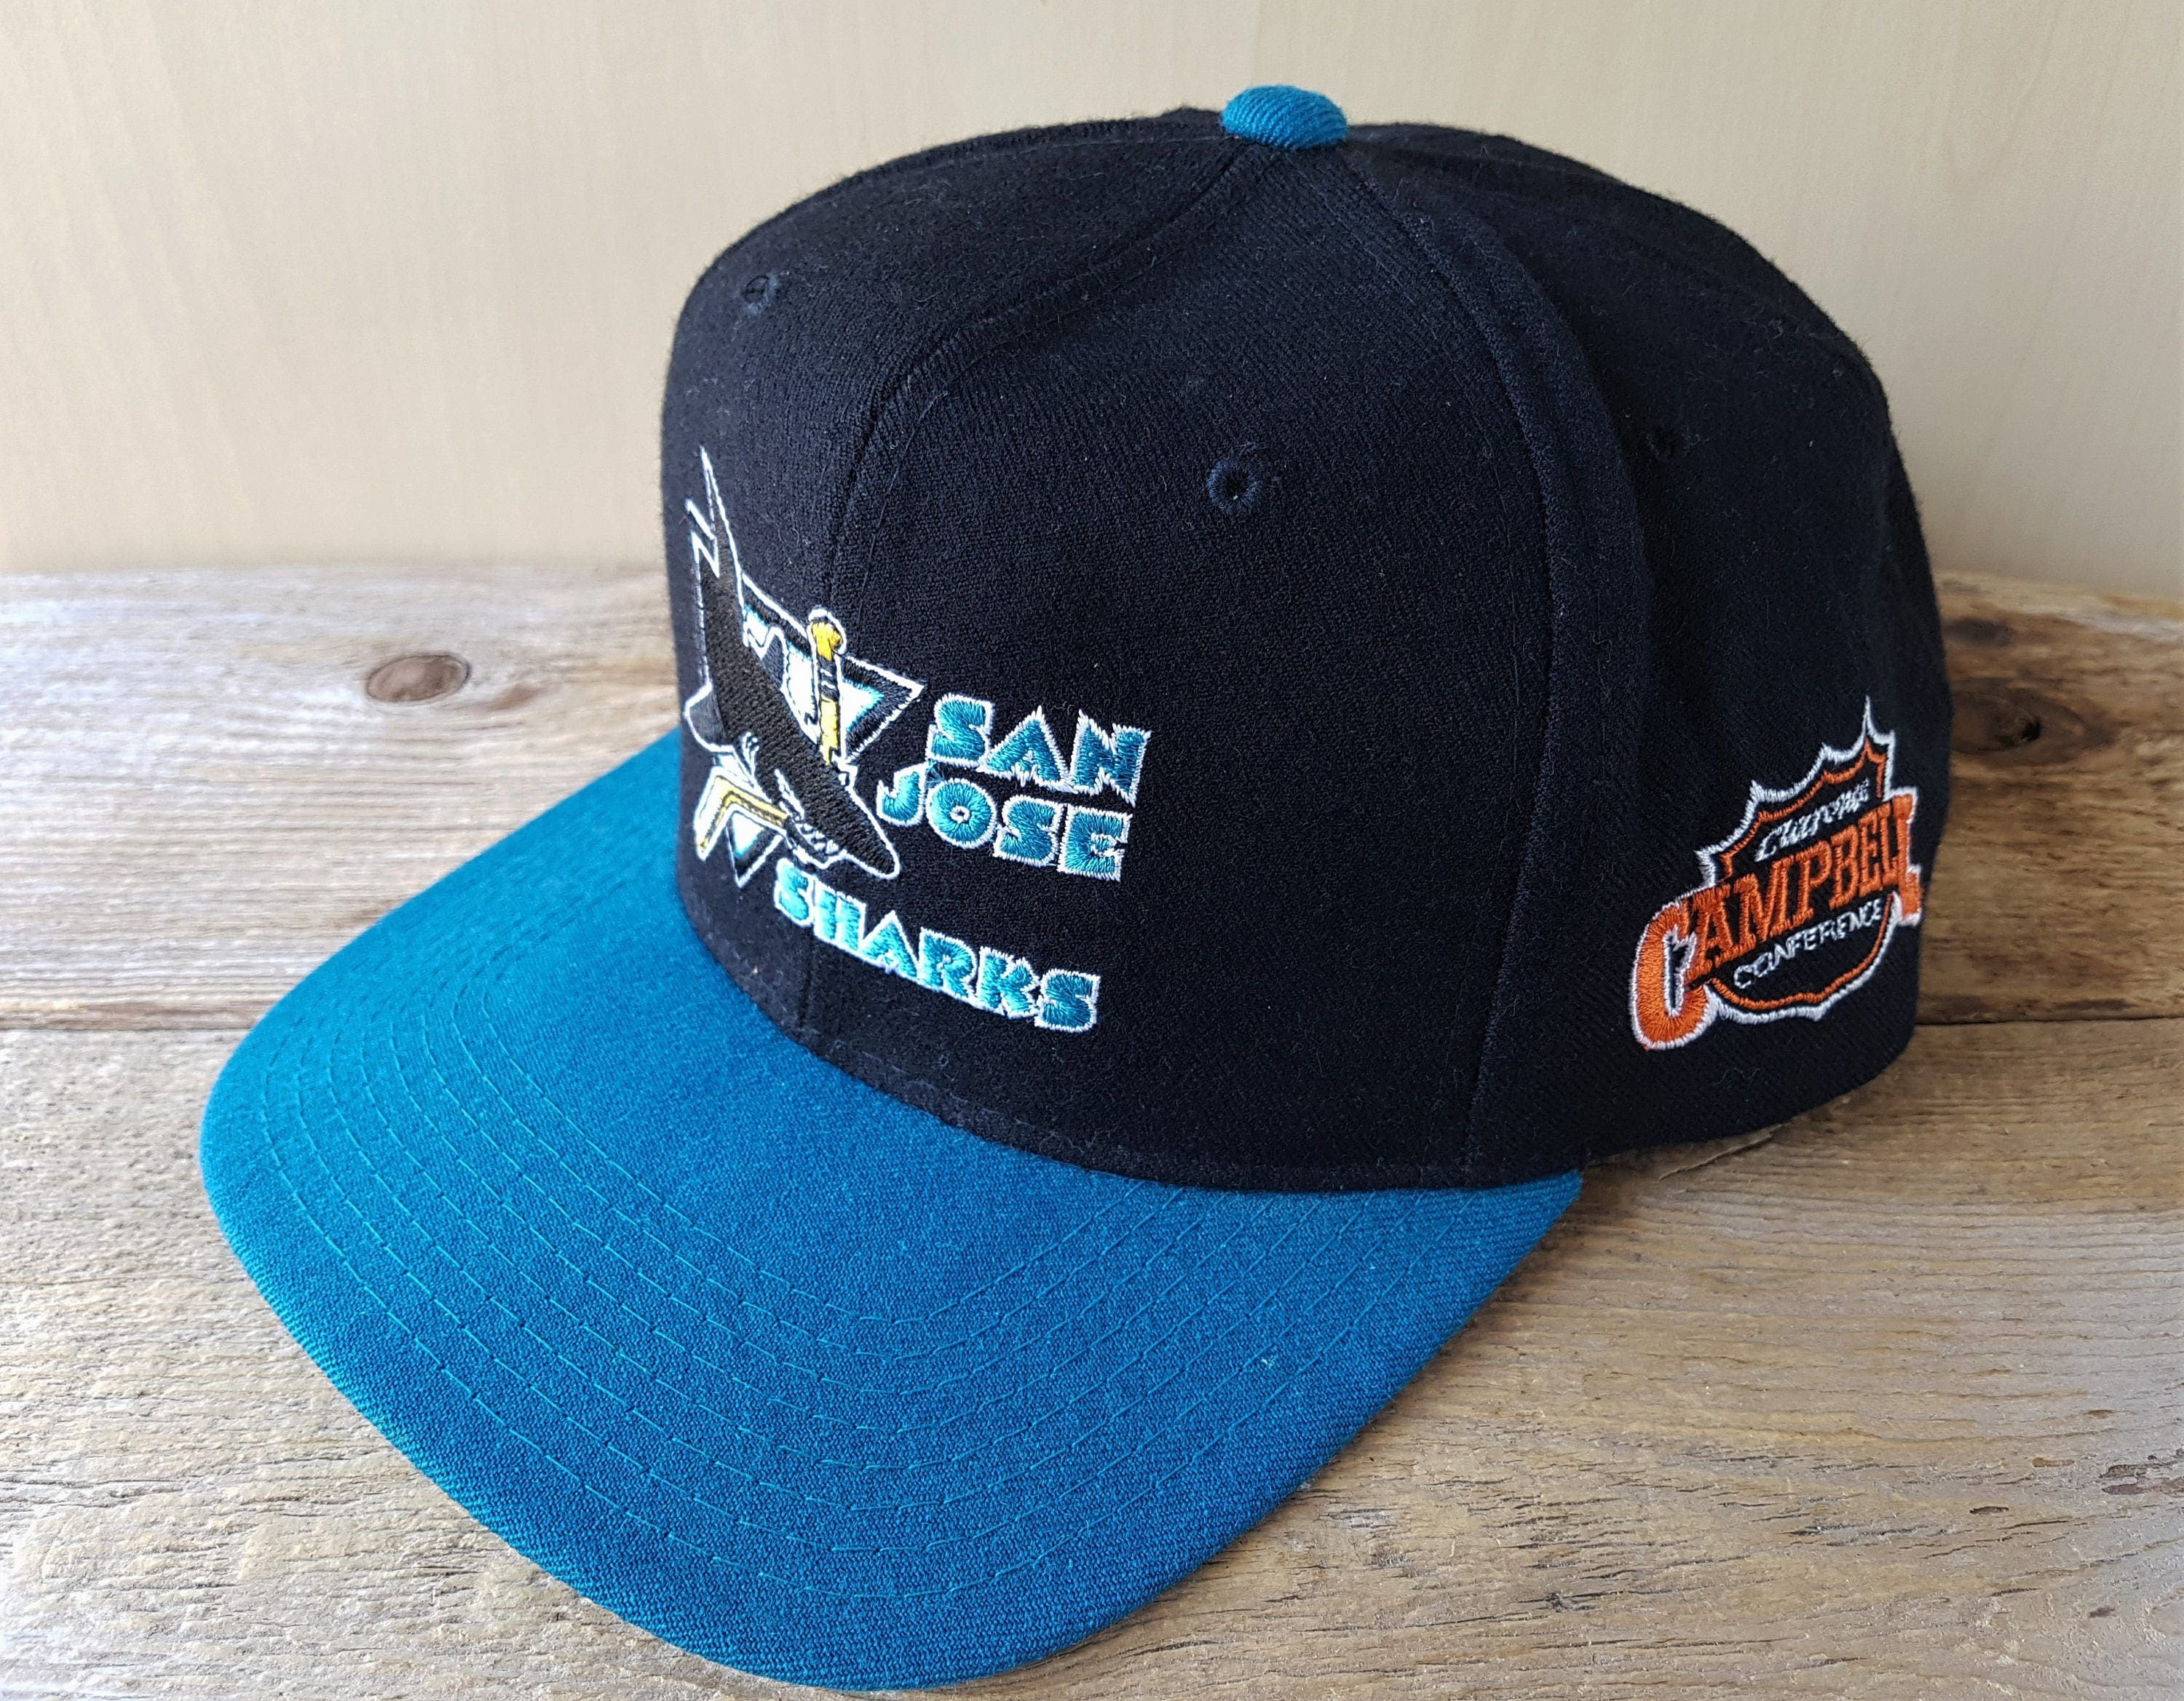 12029c71 ... shopping san jose sharks vintage 90s starter snapback hat official  licensed nhl clarence campbell conference baseball